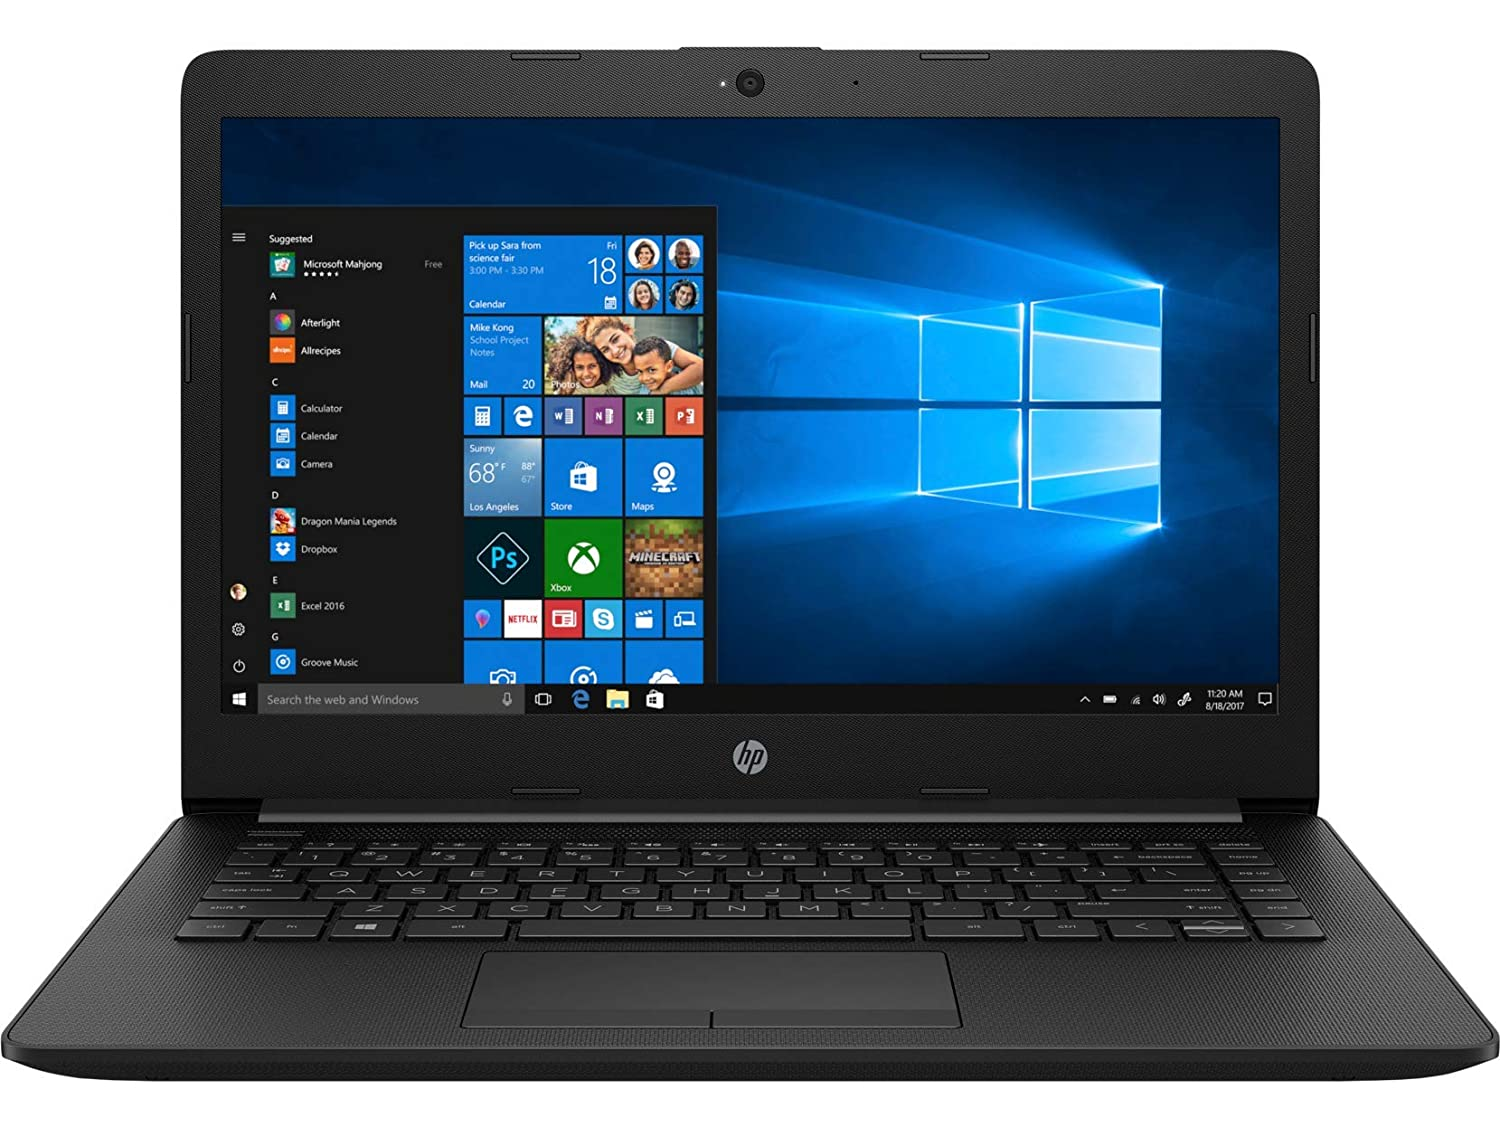 HP Envy x360 Ryzen 5 1